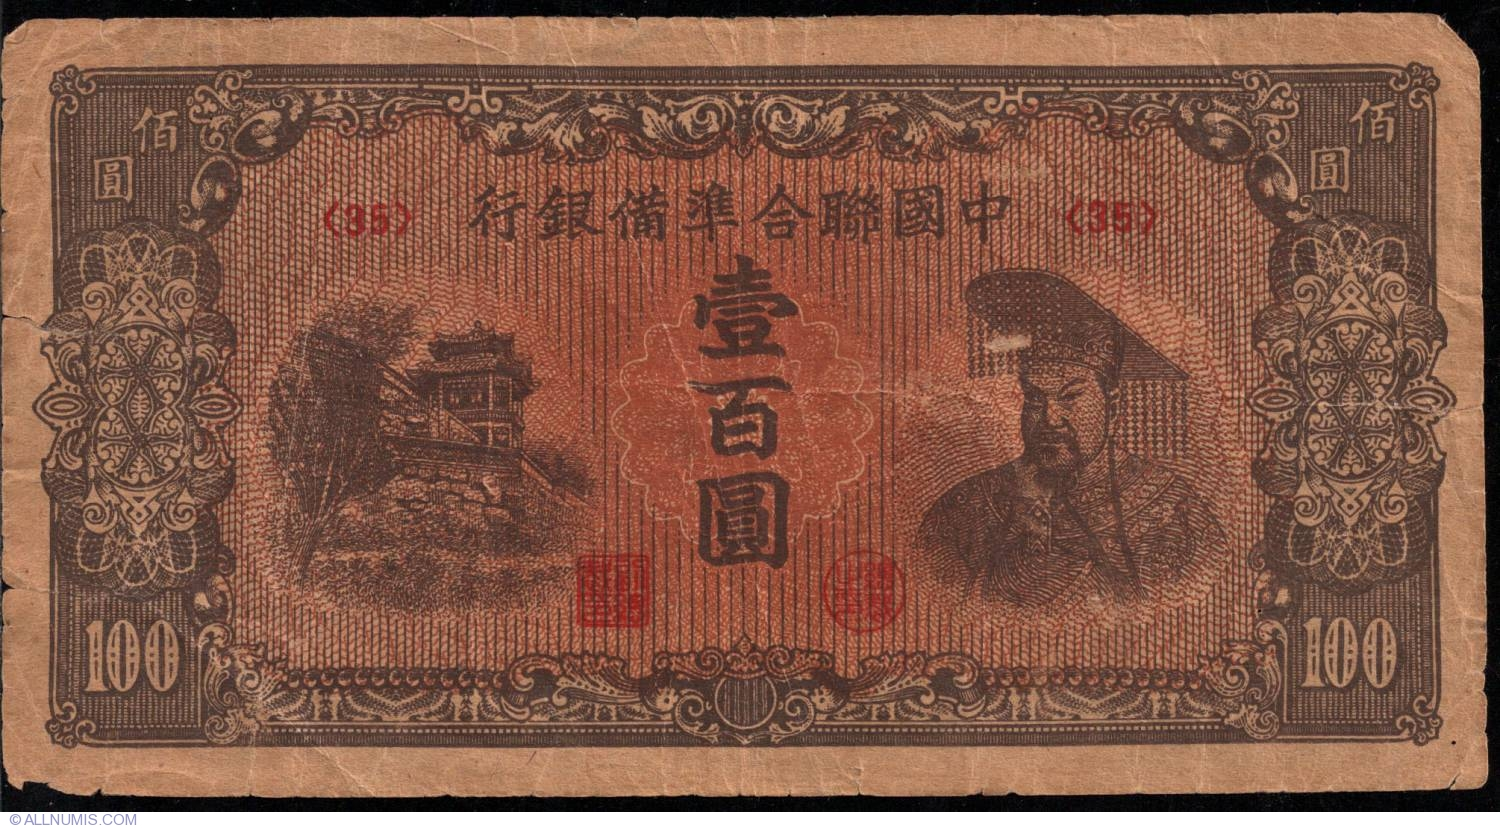 1945 WWII 100 Yuan Federal Reserve Bank Of China J88 Japanese Puppet Bank